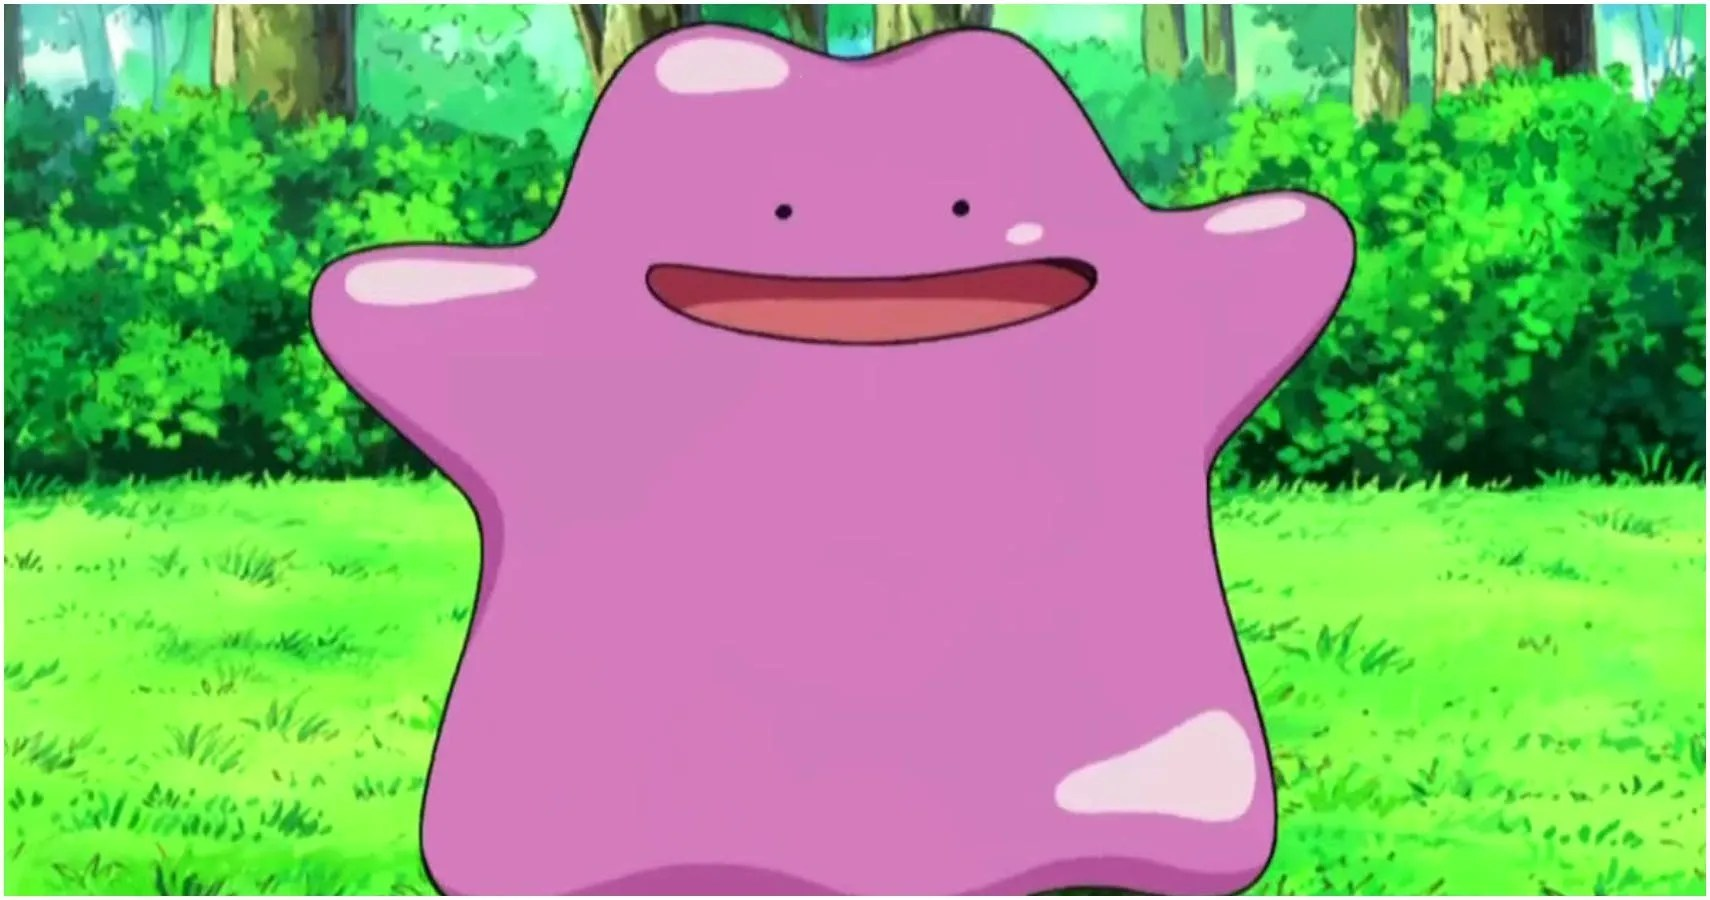 Ranked: The Most Versatile Pokemon To Have On Your Roster